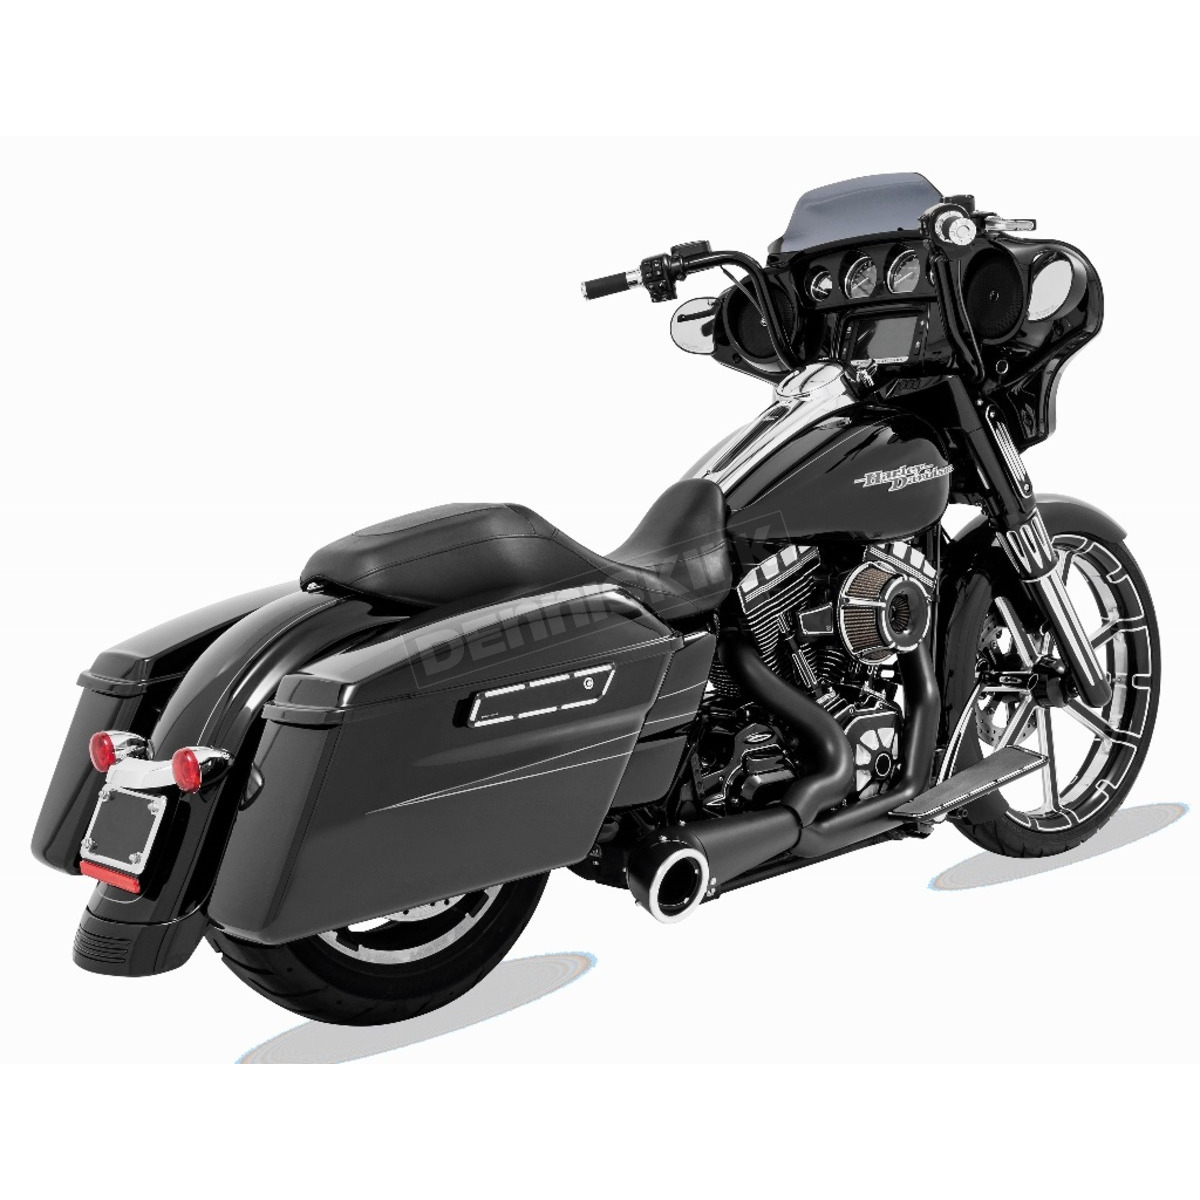 Freedom Performance Black 2 Into 1 Turnout Exhaust System Hd00838 Harley Davidson Leather Protectant